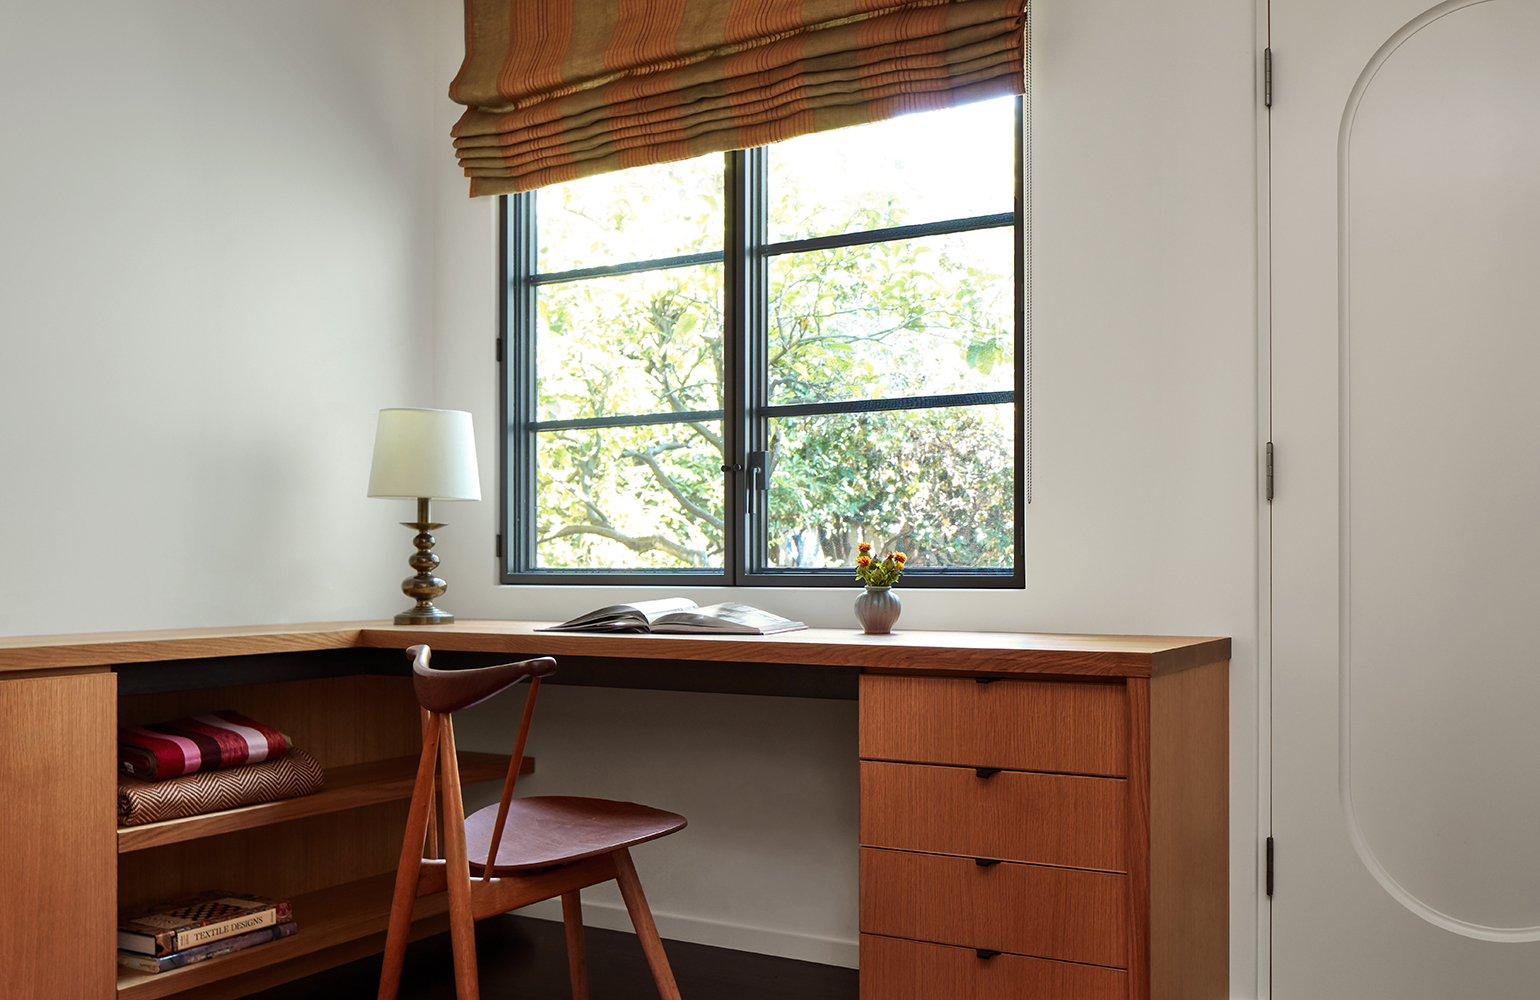 The first-floor home office includes a laundry area, and it can be transformed into a guest room if necessary. The Swedish flatweave rug is vintage from FJ Hakimian, and the window shade fabric is from Osborne & Little.